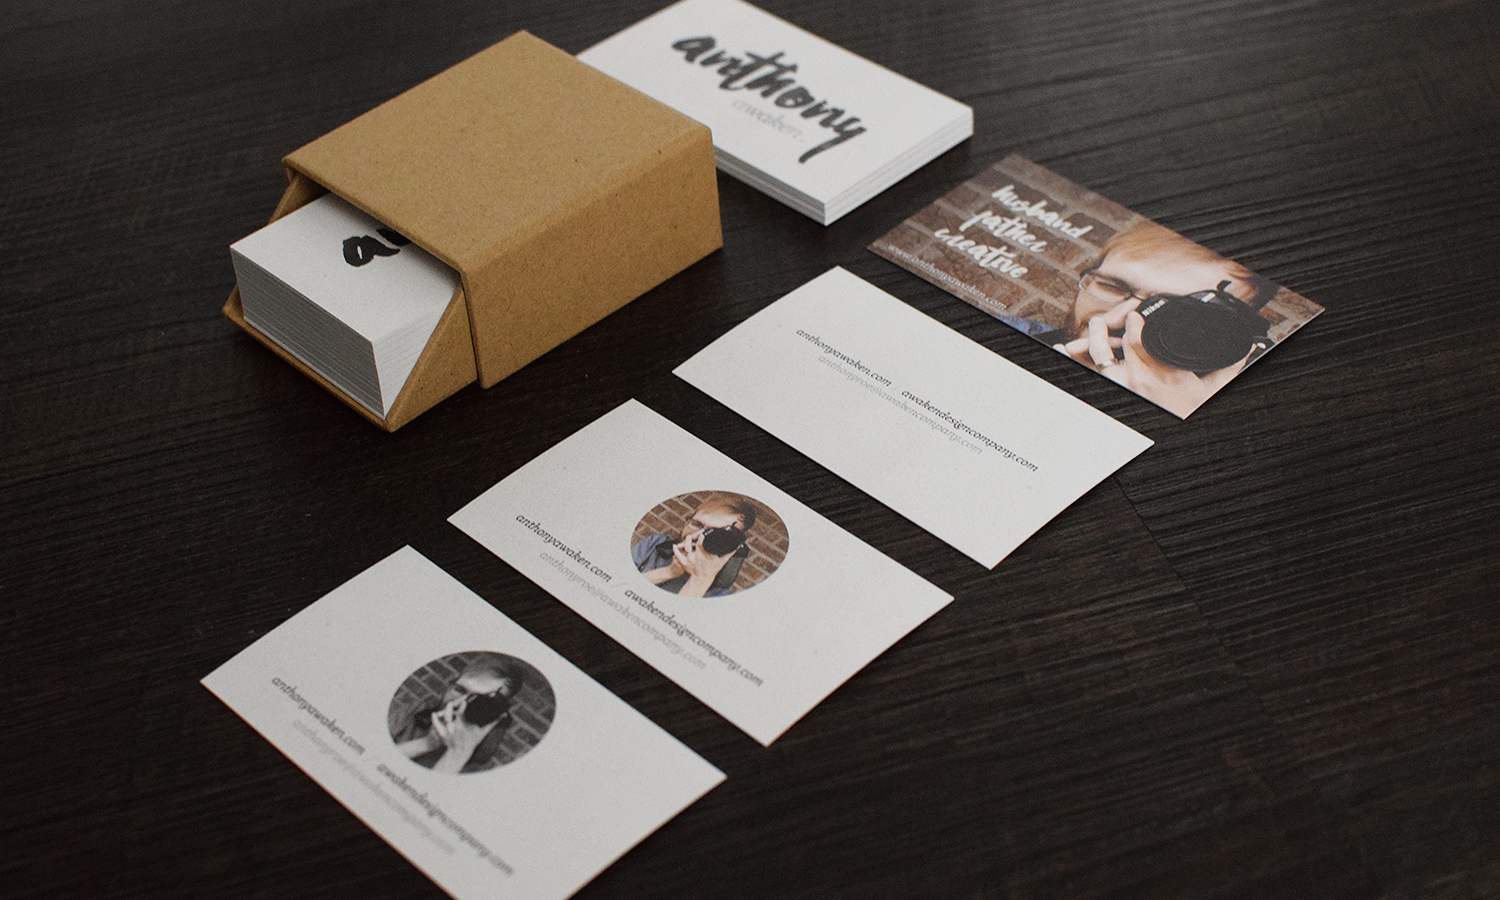 Moo business cards review poemview moo business cards review by anthony awaken reheart Images